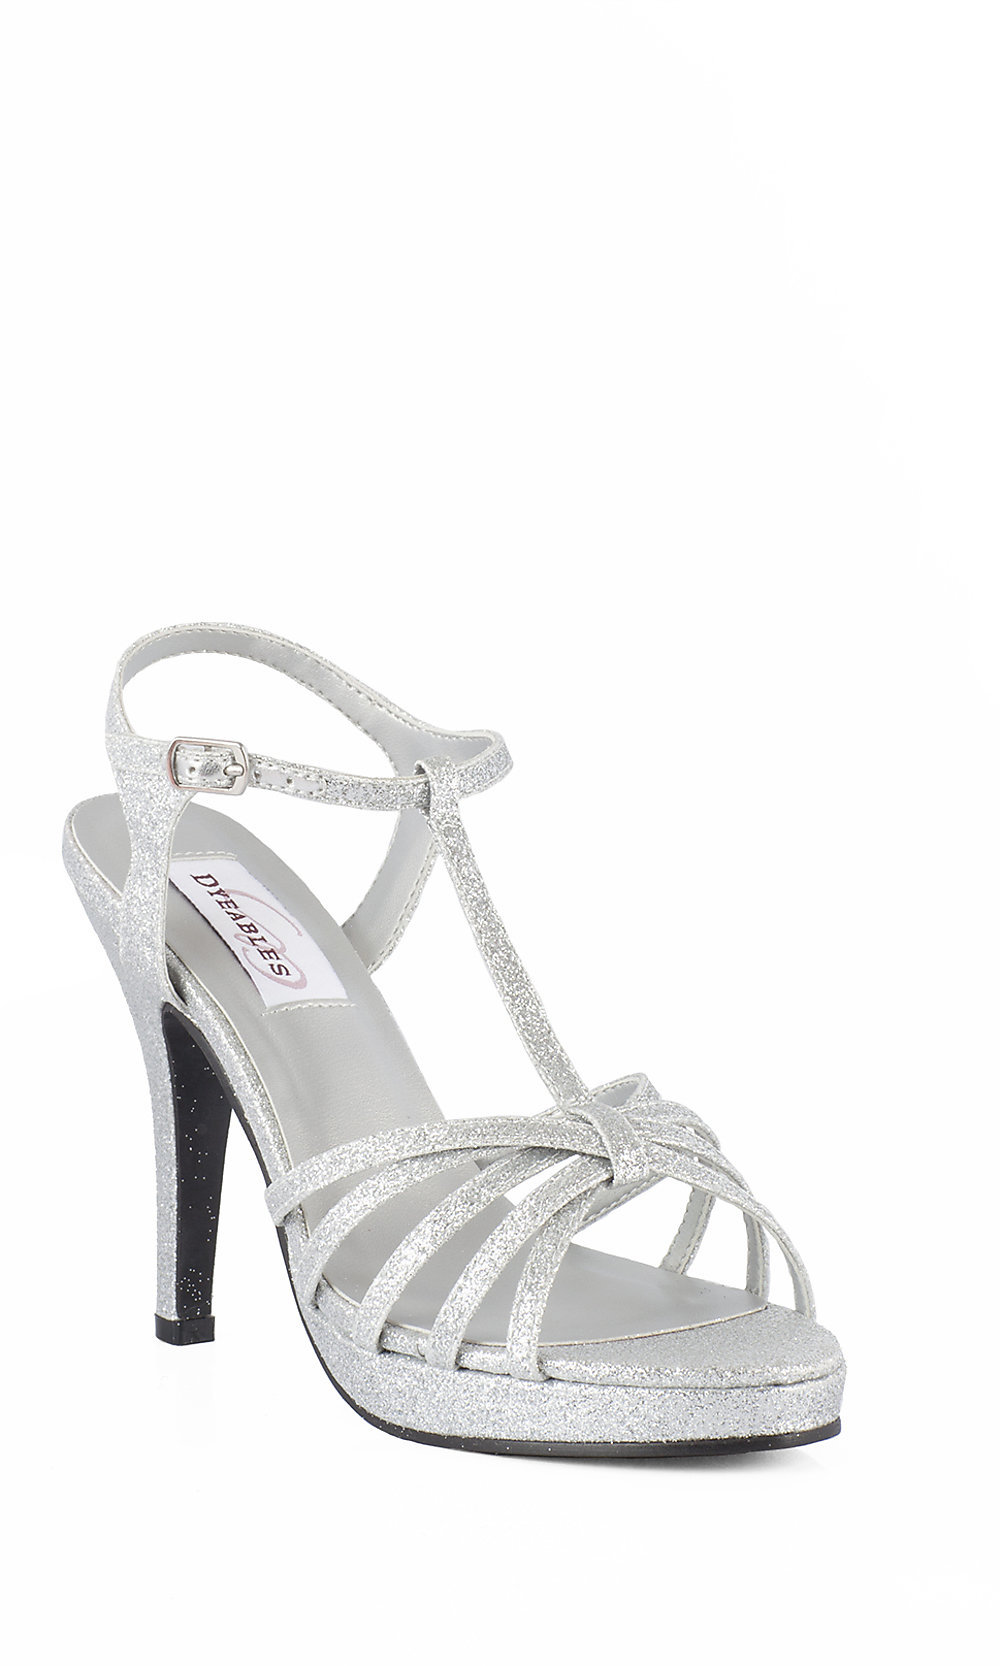 e3db75af416 Strappy Open Toe Silver Prom Shoes